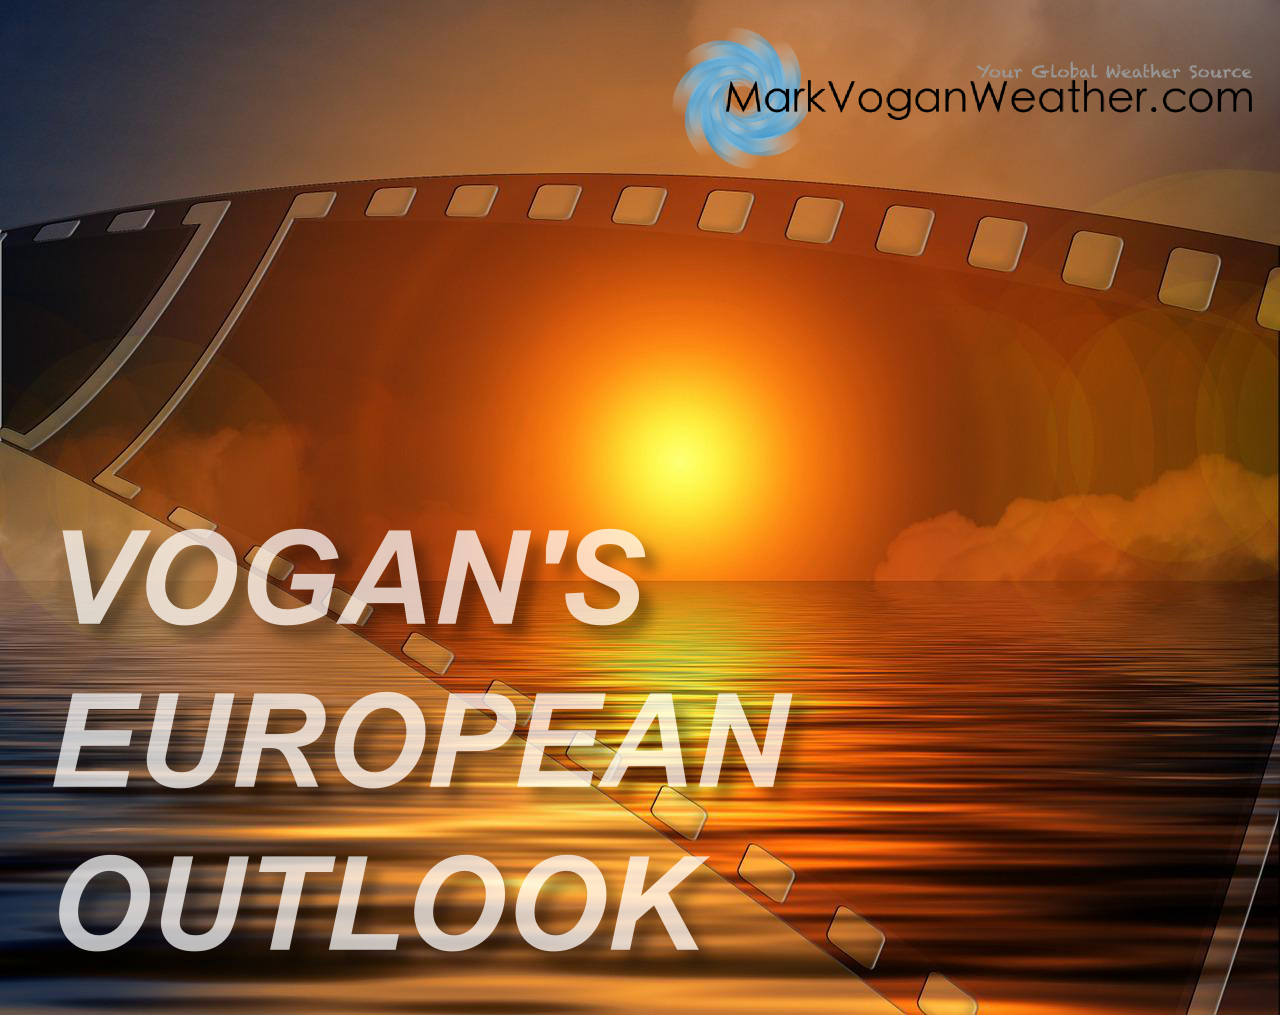 FRI 24 OCT: VOGAN'S EUROPEAN OUTLOOK